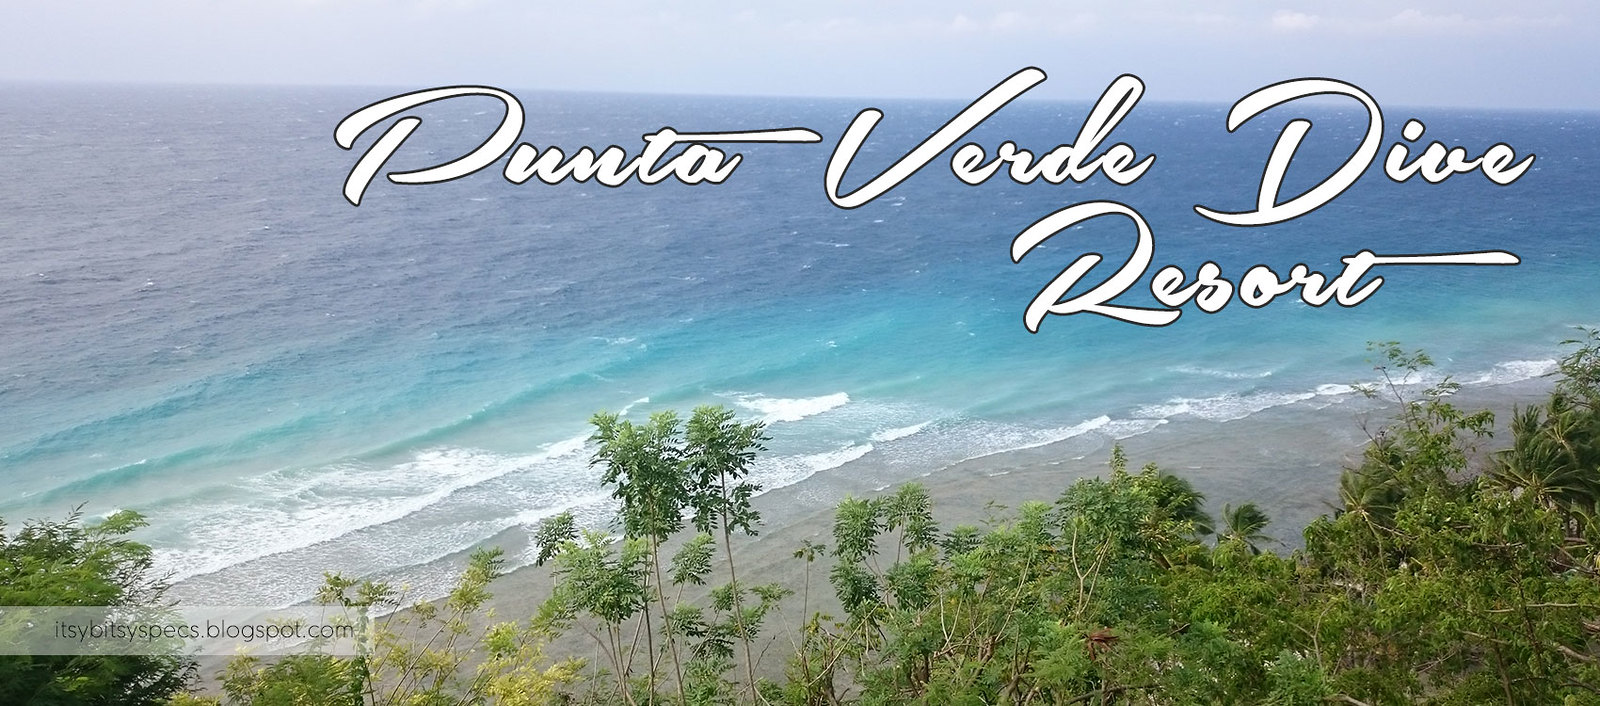 Goodmorning Punta Verde Dive Resort 2017